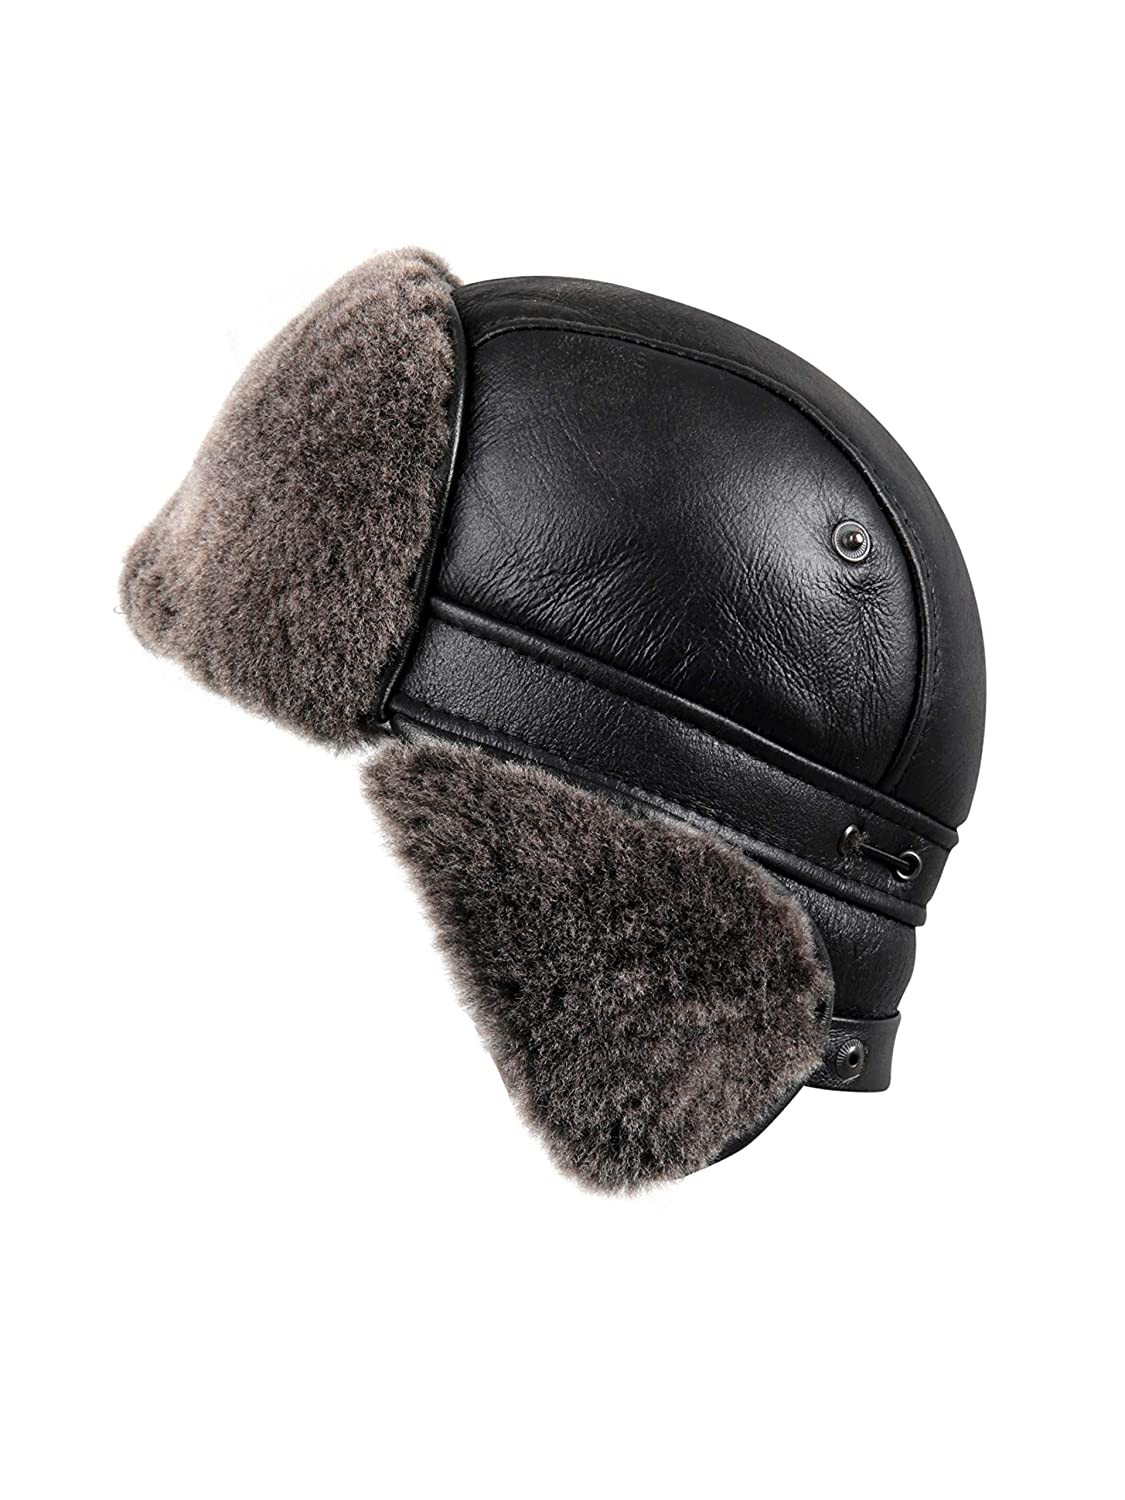 d95e17a0bbc Amazon.com   Zavelio Unisex Shearling Sheepskin Aviator Russian Ushanka  with Snap Hat   Sports   Outdoors